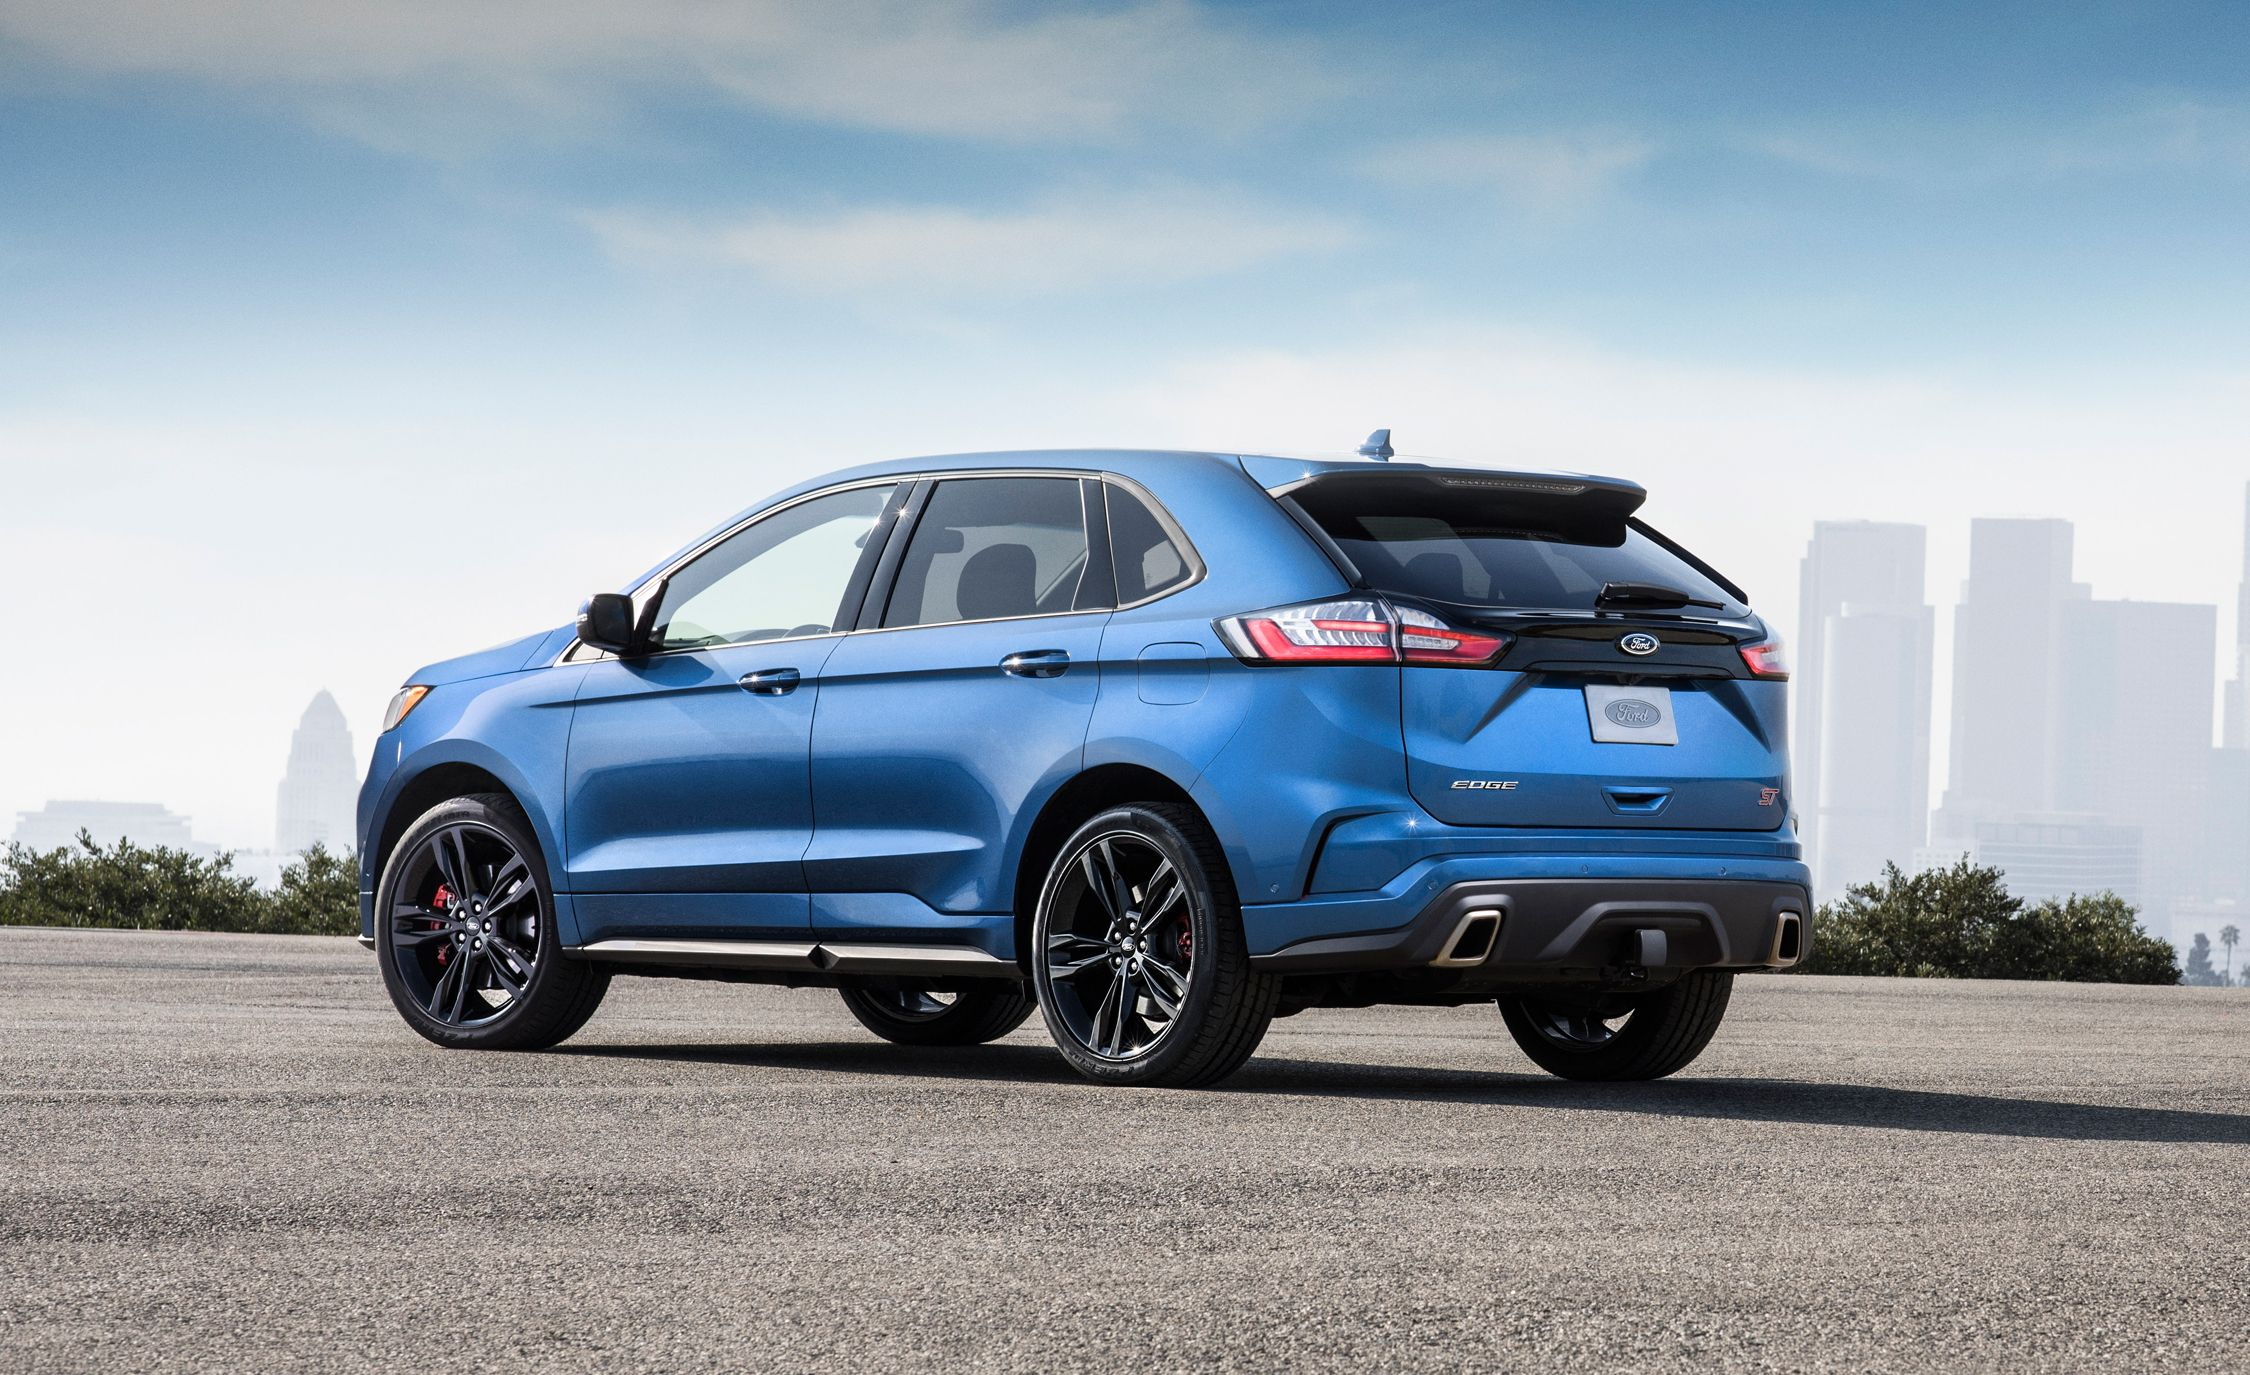 Mercedes For Sale >> 2019 Ford Edge ST Pricing – New High-Performance Crossover Starts at $43,350